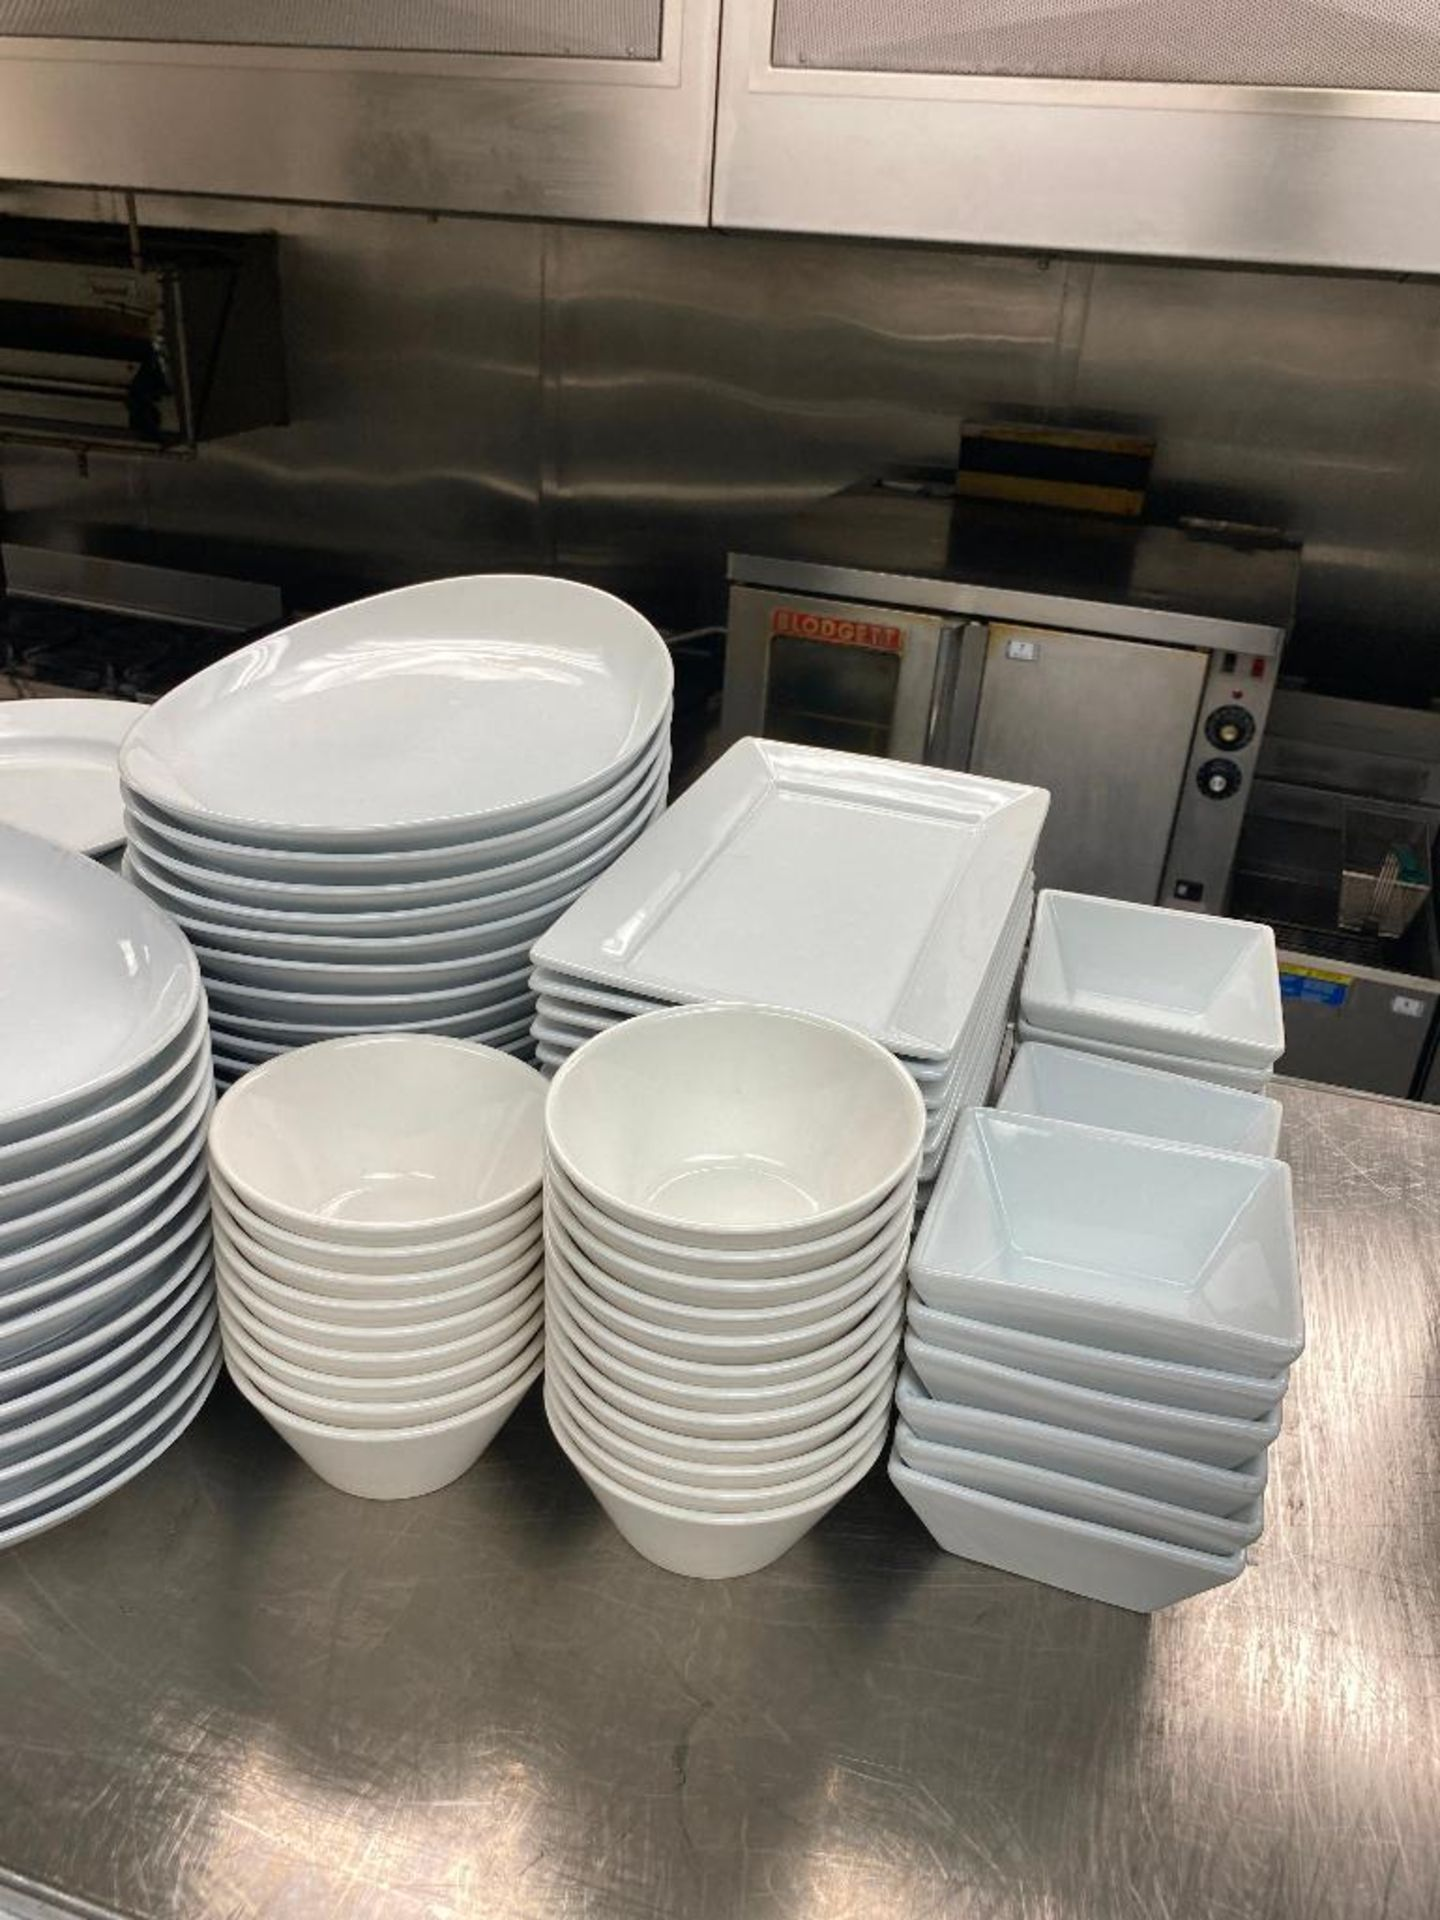 LOT OF ASSORTED DINNERWARE INCLUDING: PLATES, BOWLS, SERVING TRAY - Image 4 of 4